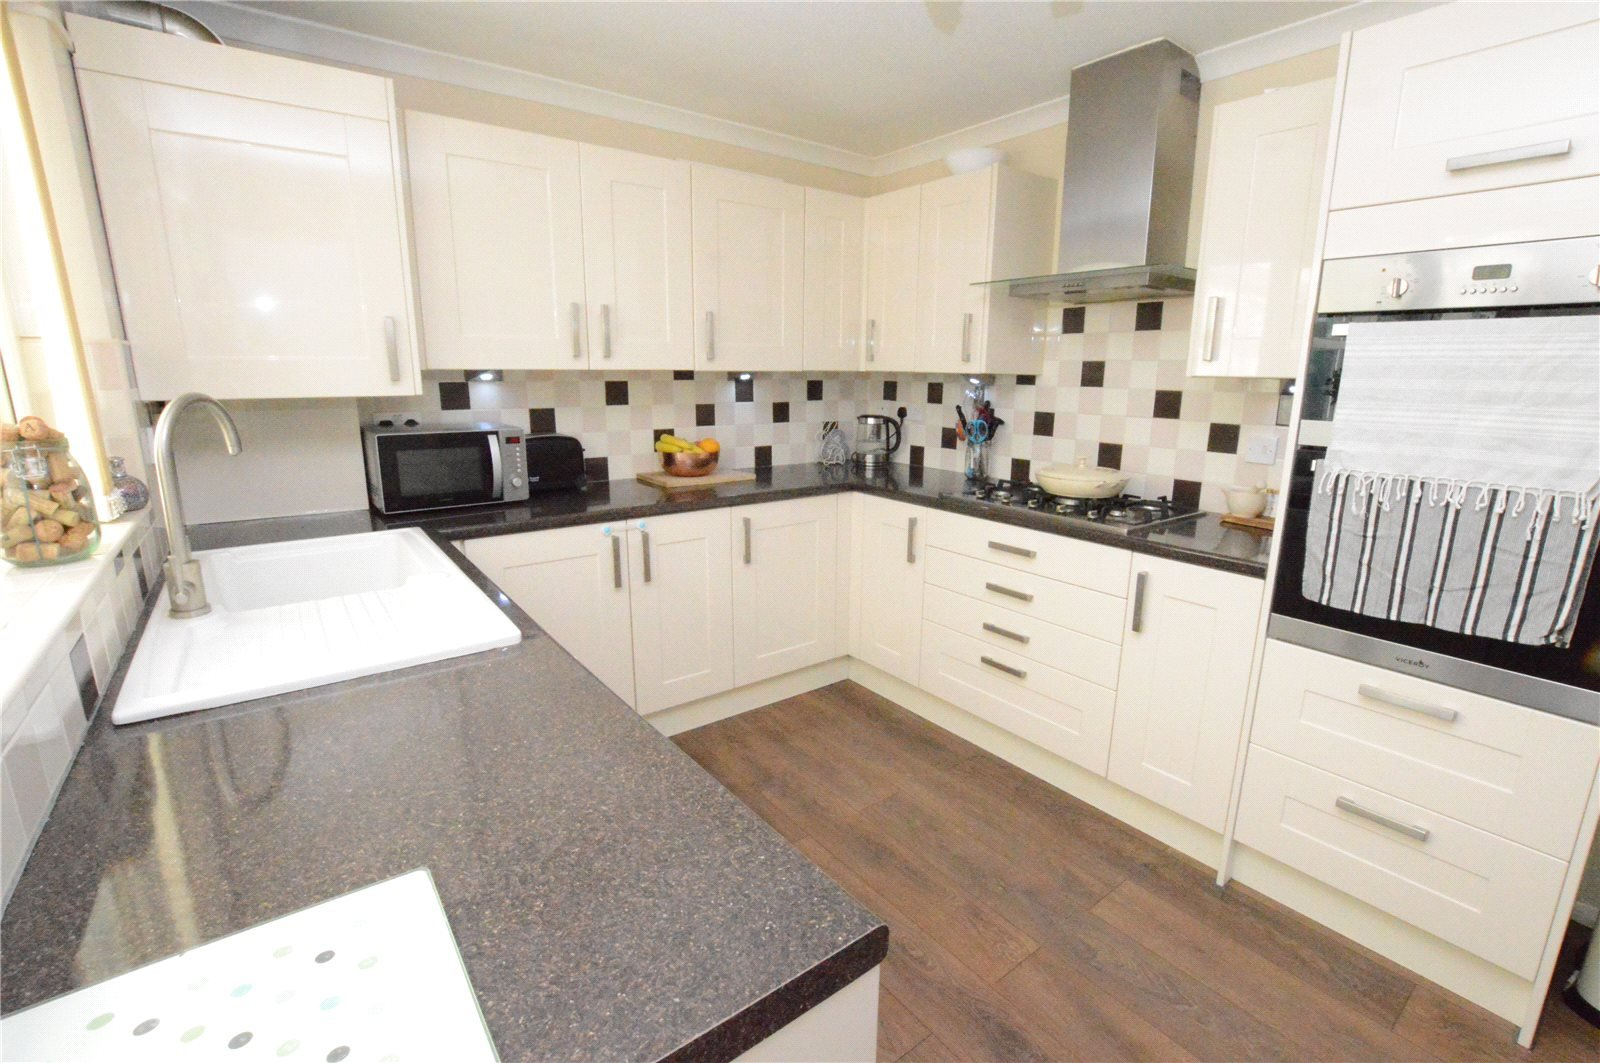 property for sale in crossgates, kitchen area, modern and fitted kitchen, neutral colour scheme